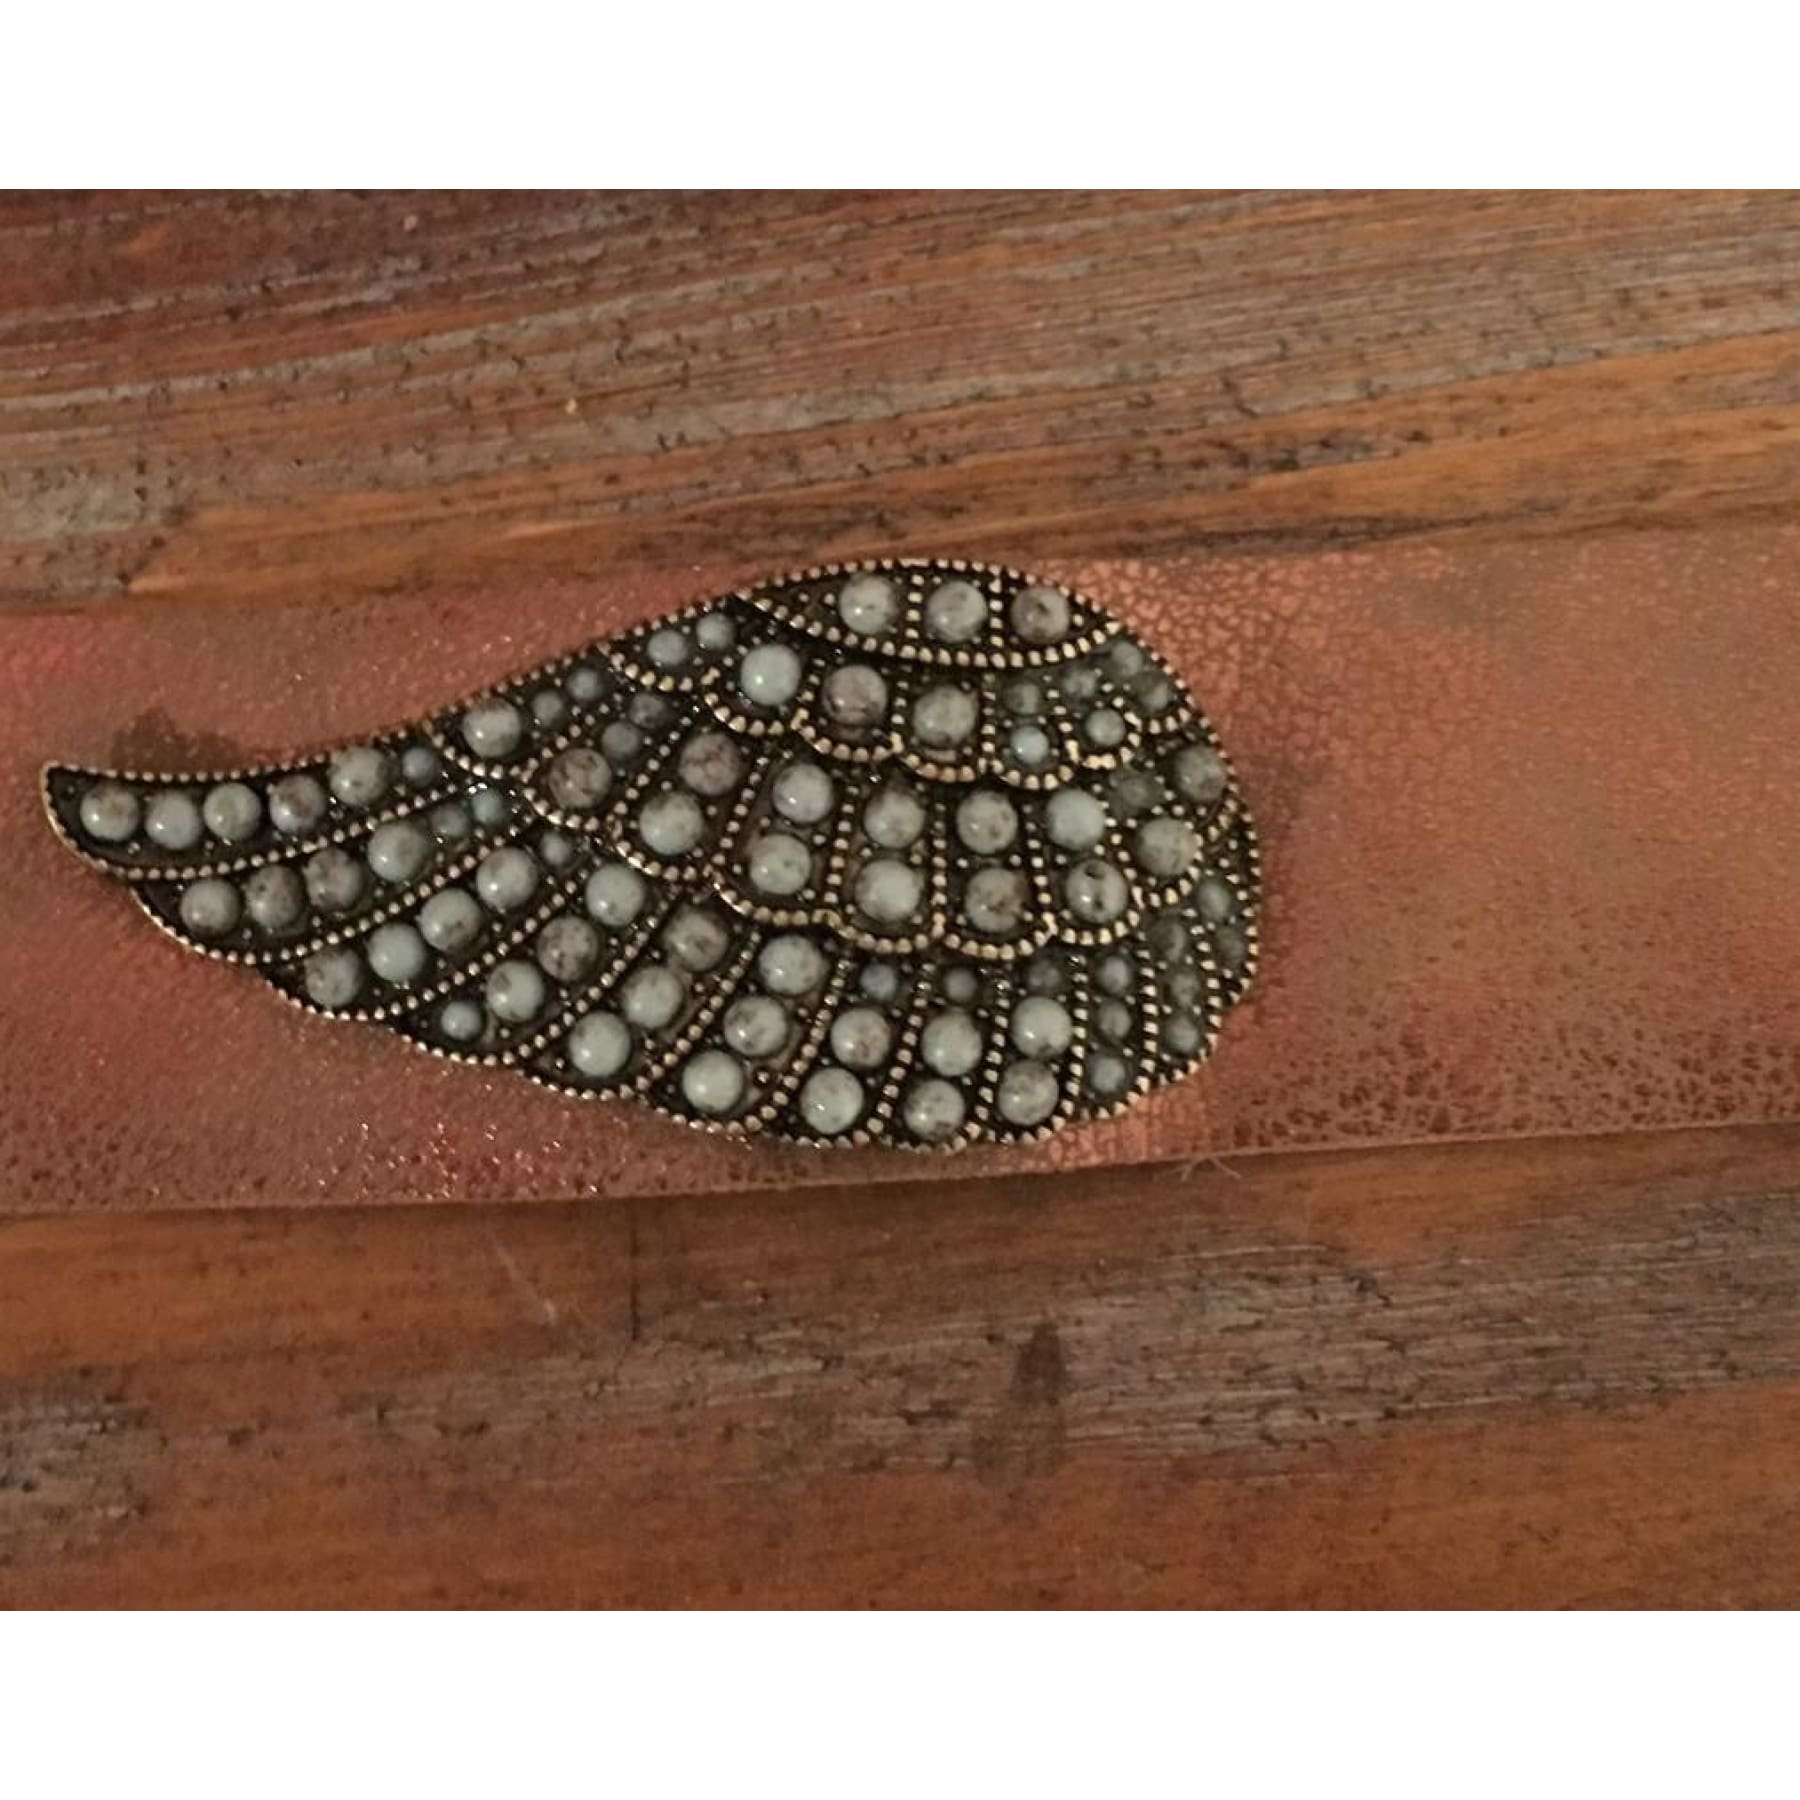 Angel Wing Metallic Leather Bracelet,Bracelet - Dirt Road Divas Boutique